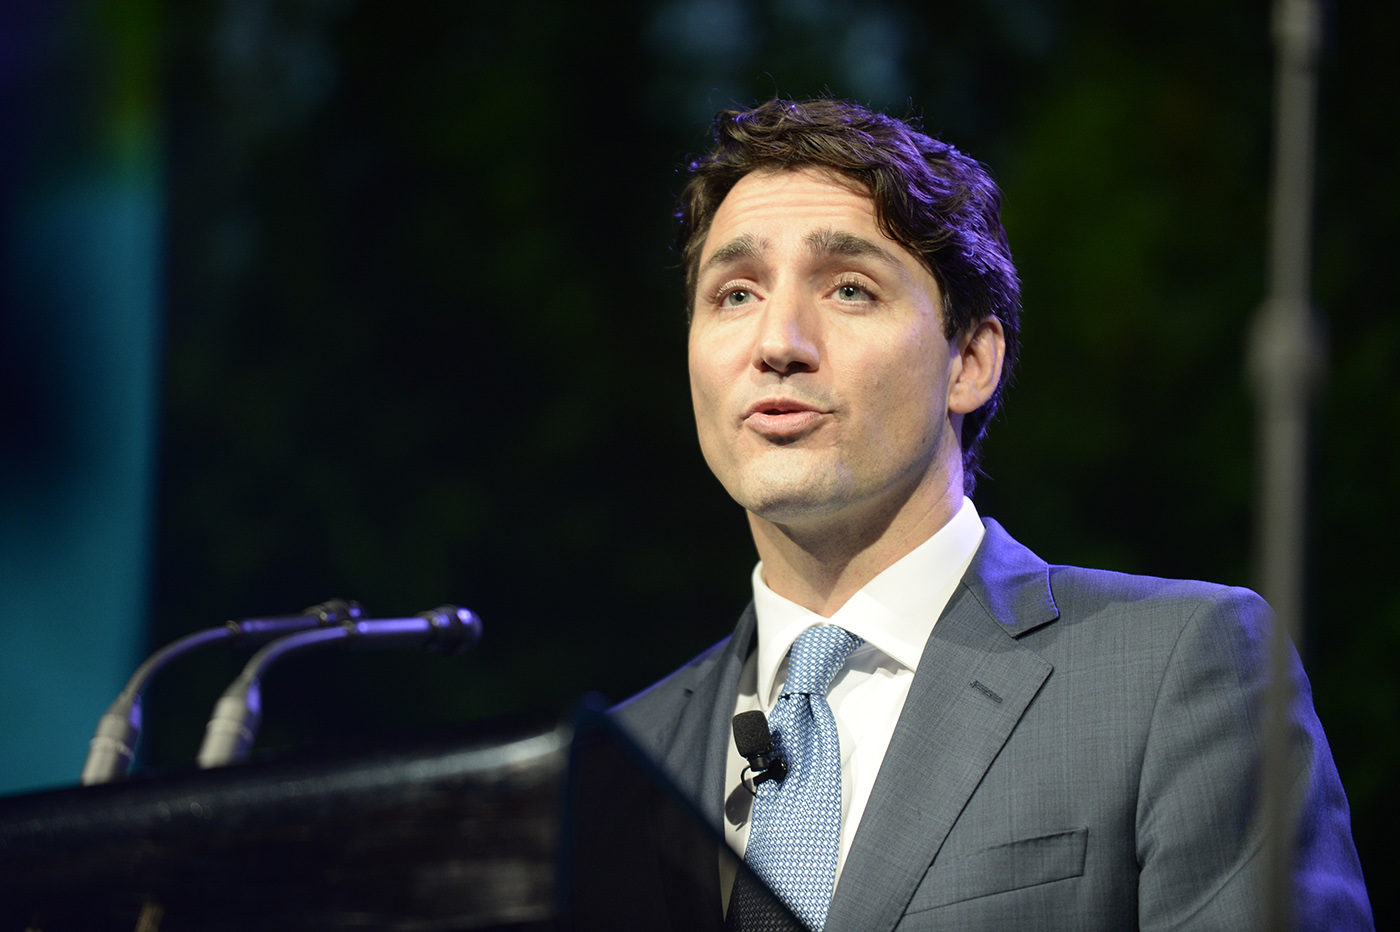 Canada PM Trudeau addresses CERAWeek 2017